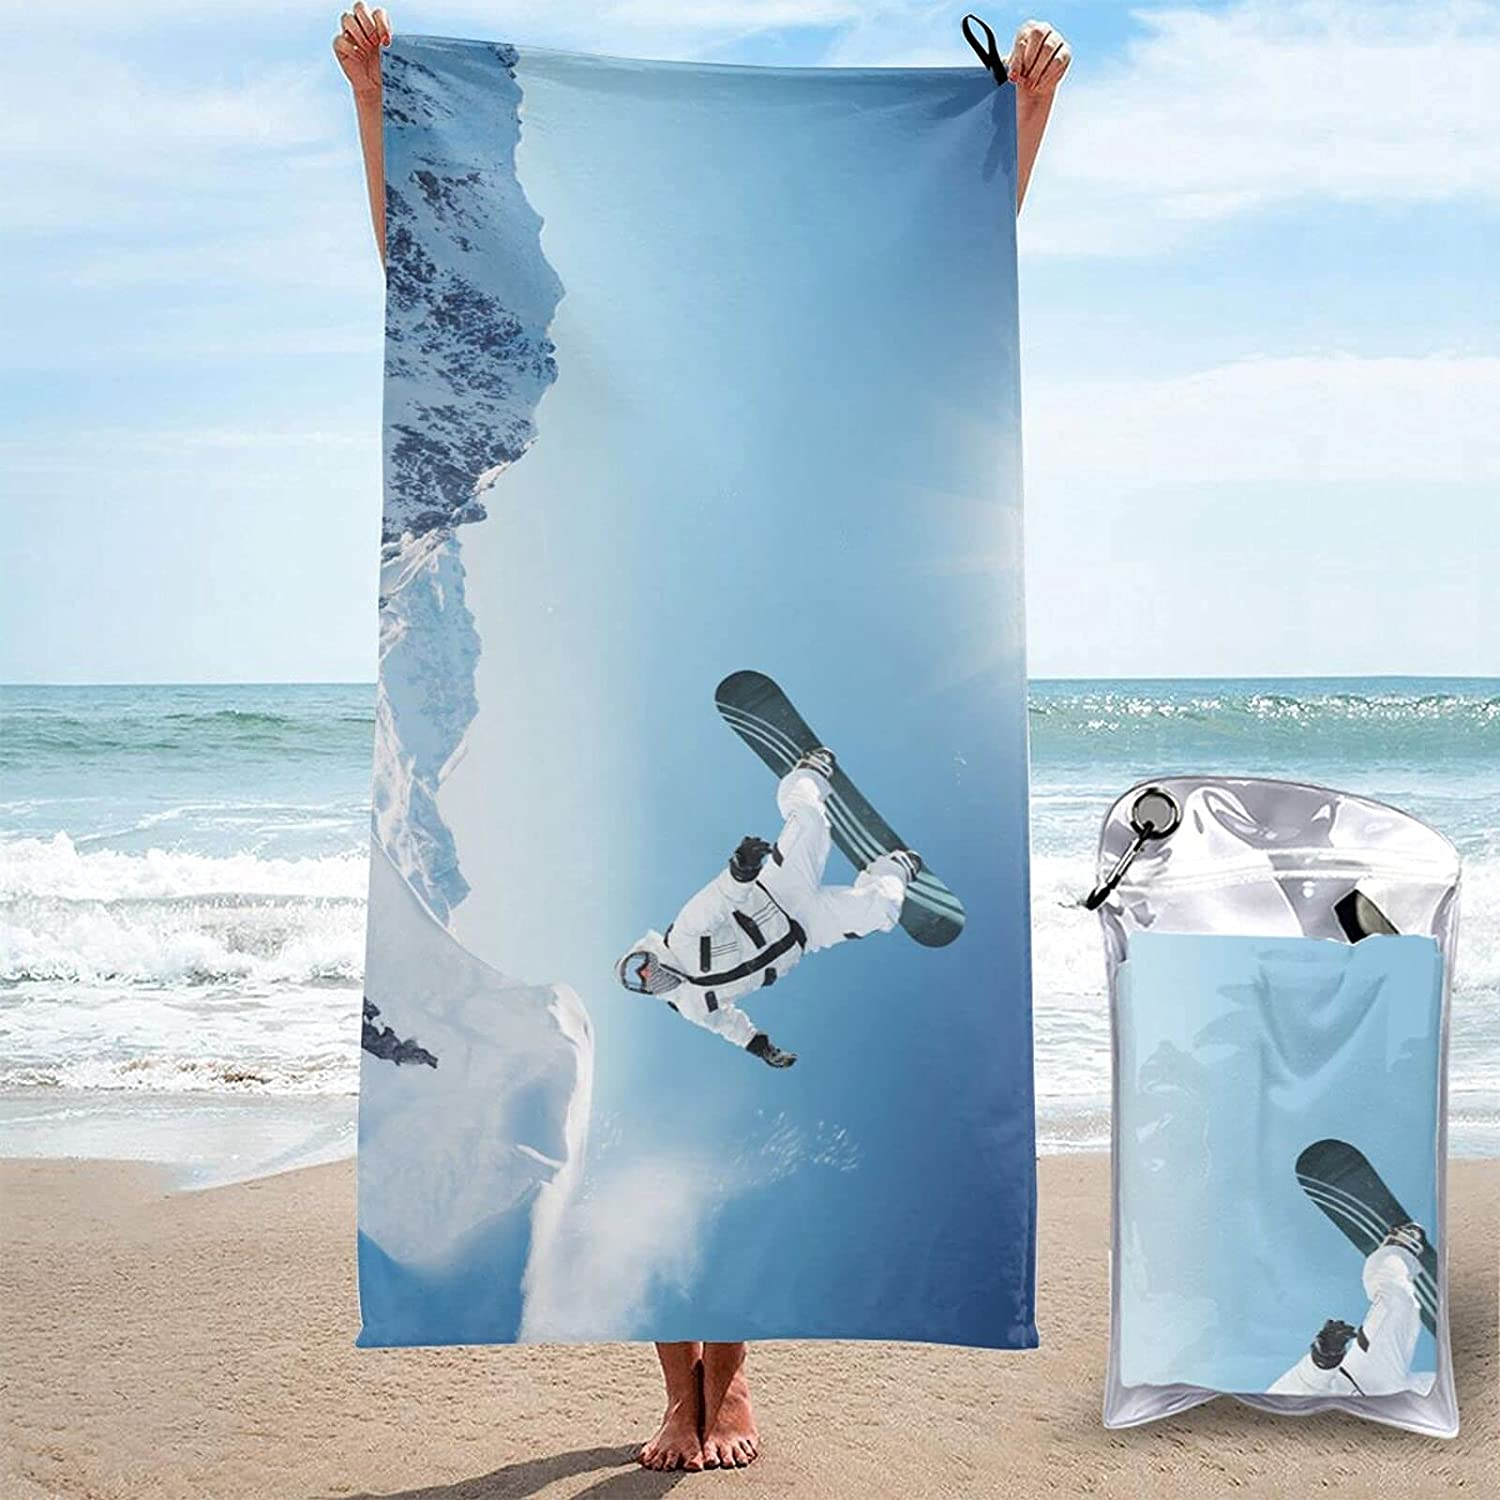 Max 75% Max 68% OFF OFF Sunset Seaside Print Quick Absorbent Super Dry Towel